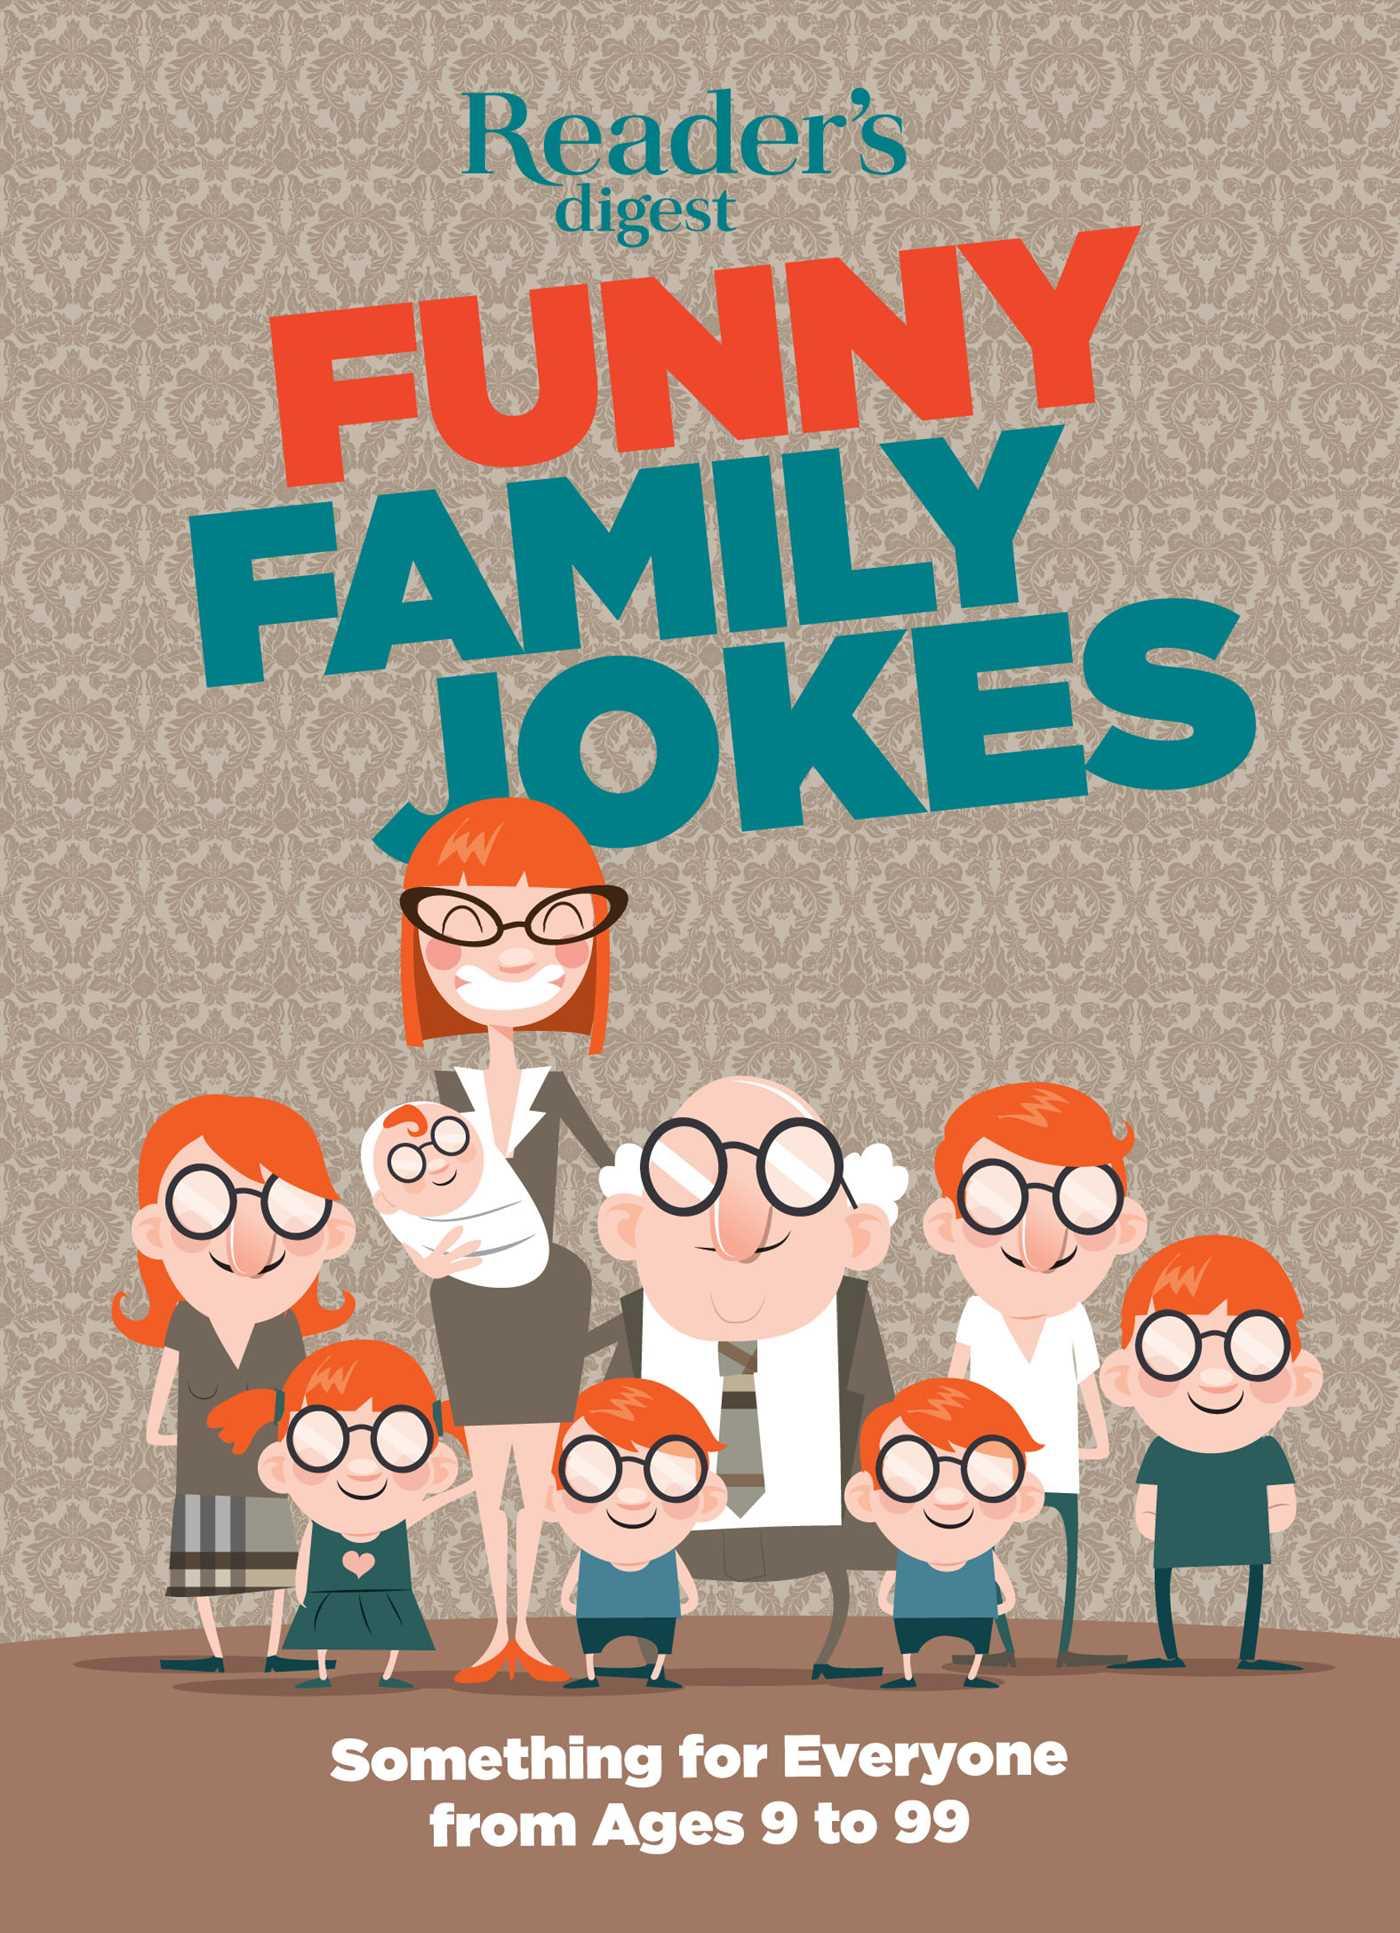 Readers-digest-funny-family-jokes-9781621451907_hr